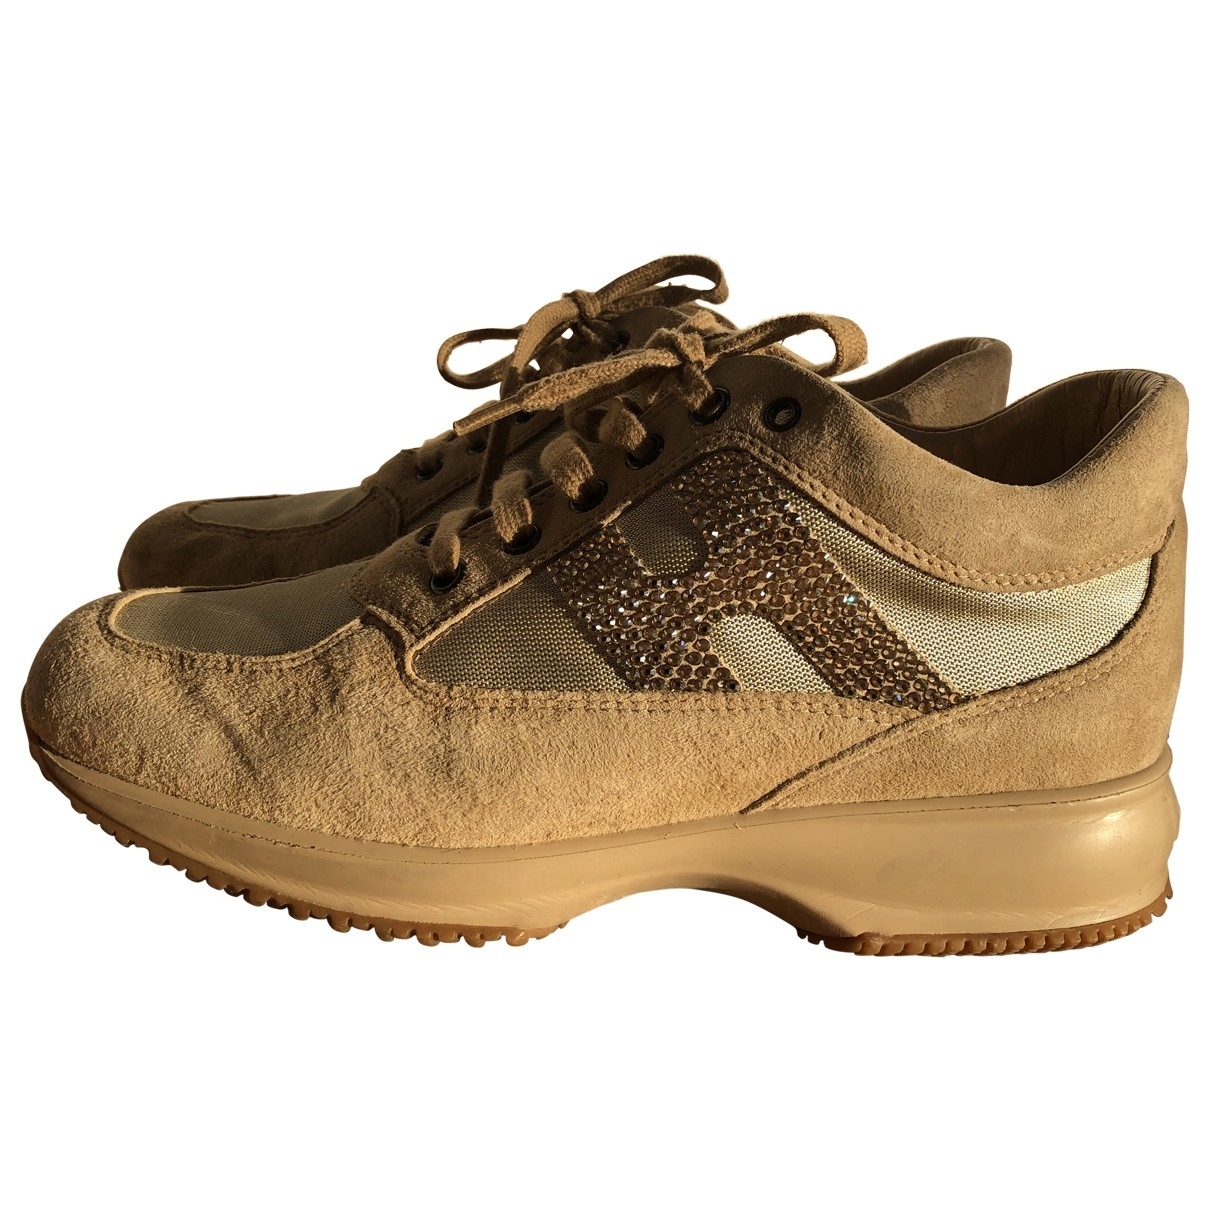 Hogan \N Beige Leather Trainers for Women 38.5 EU